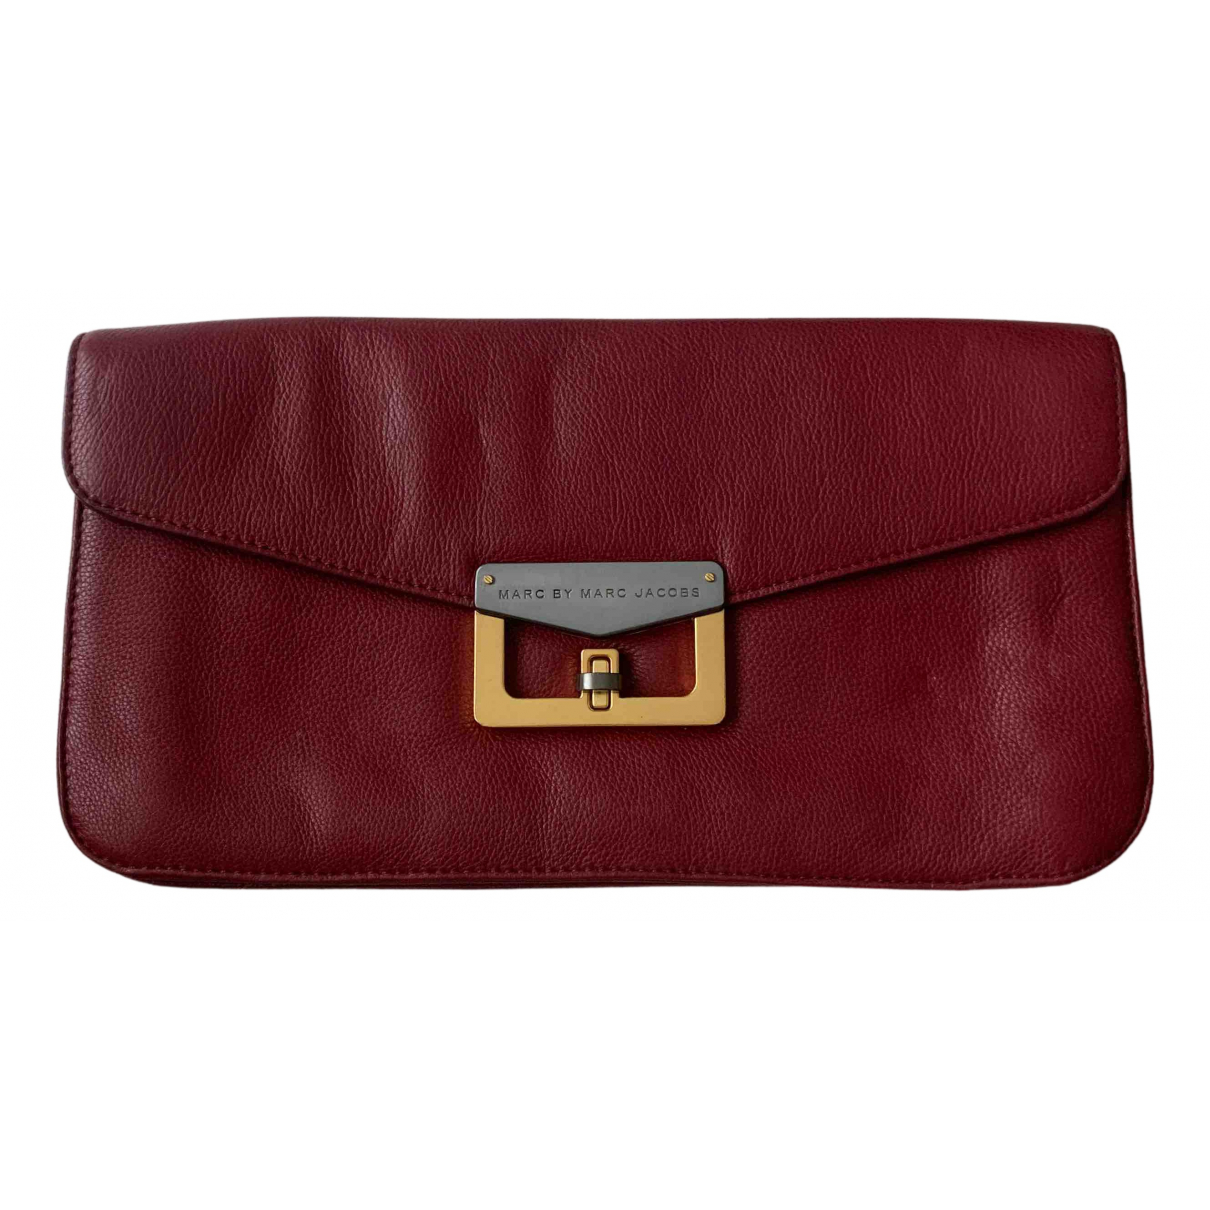 Marc By Marc Jacobs N Burgundy Leather Clutch bag for Women N